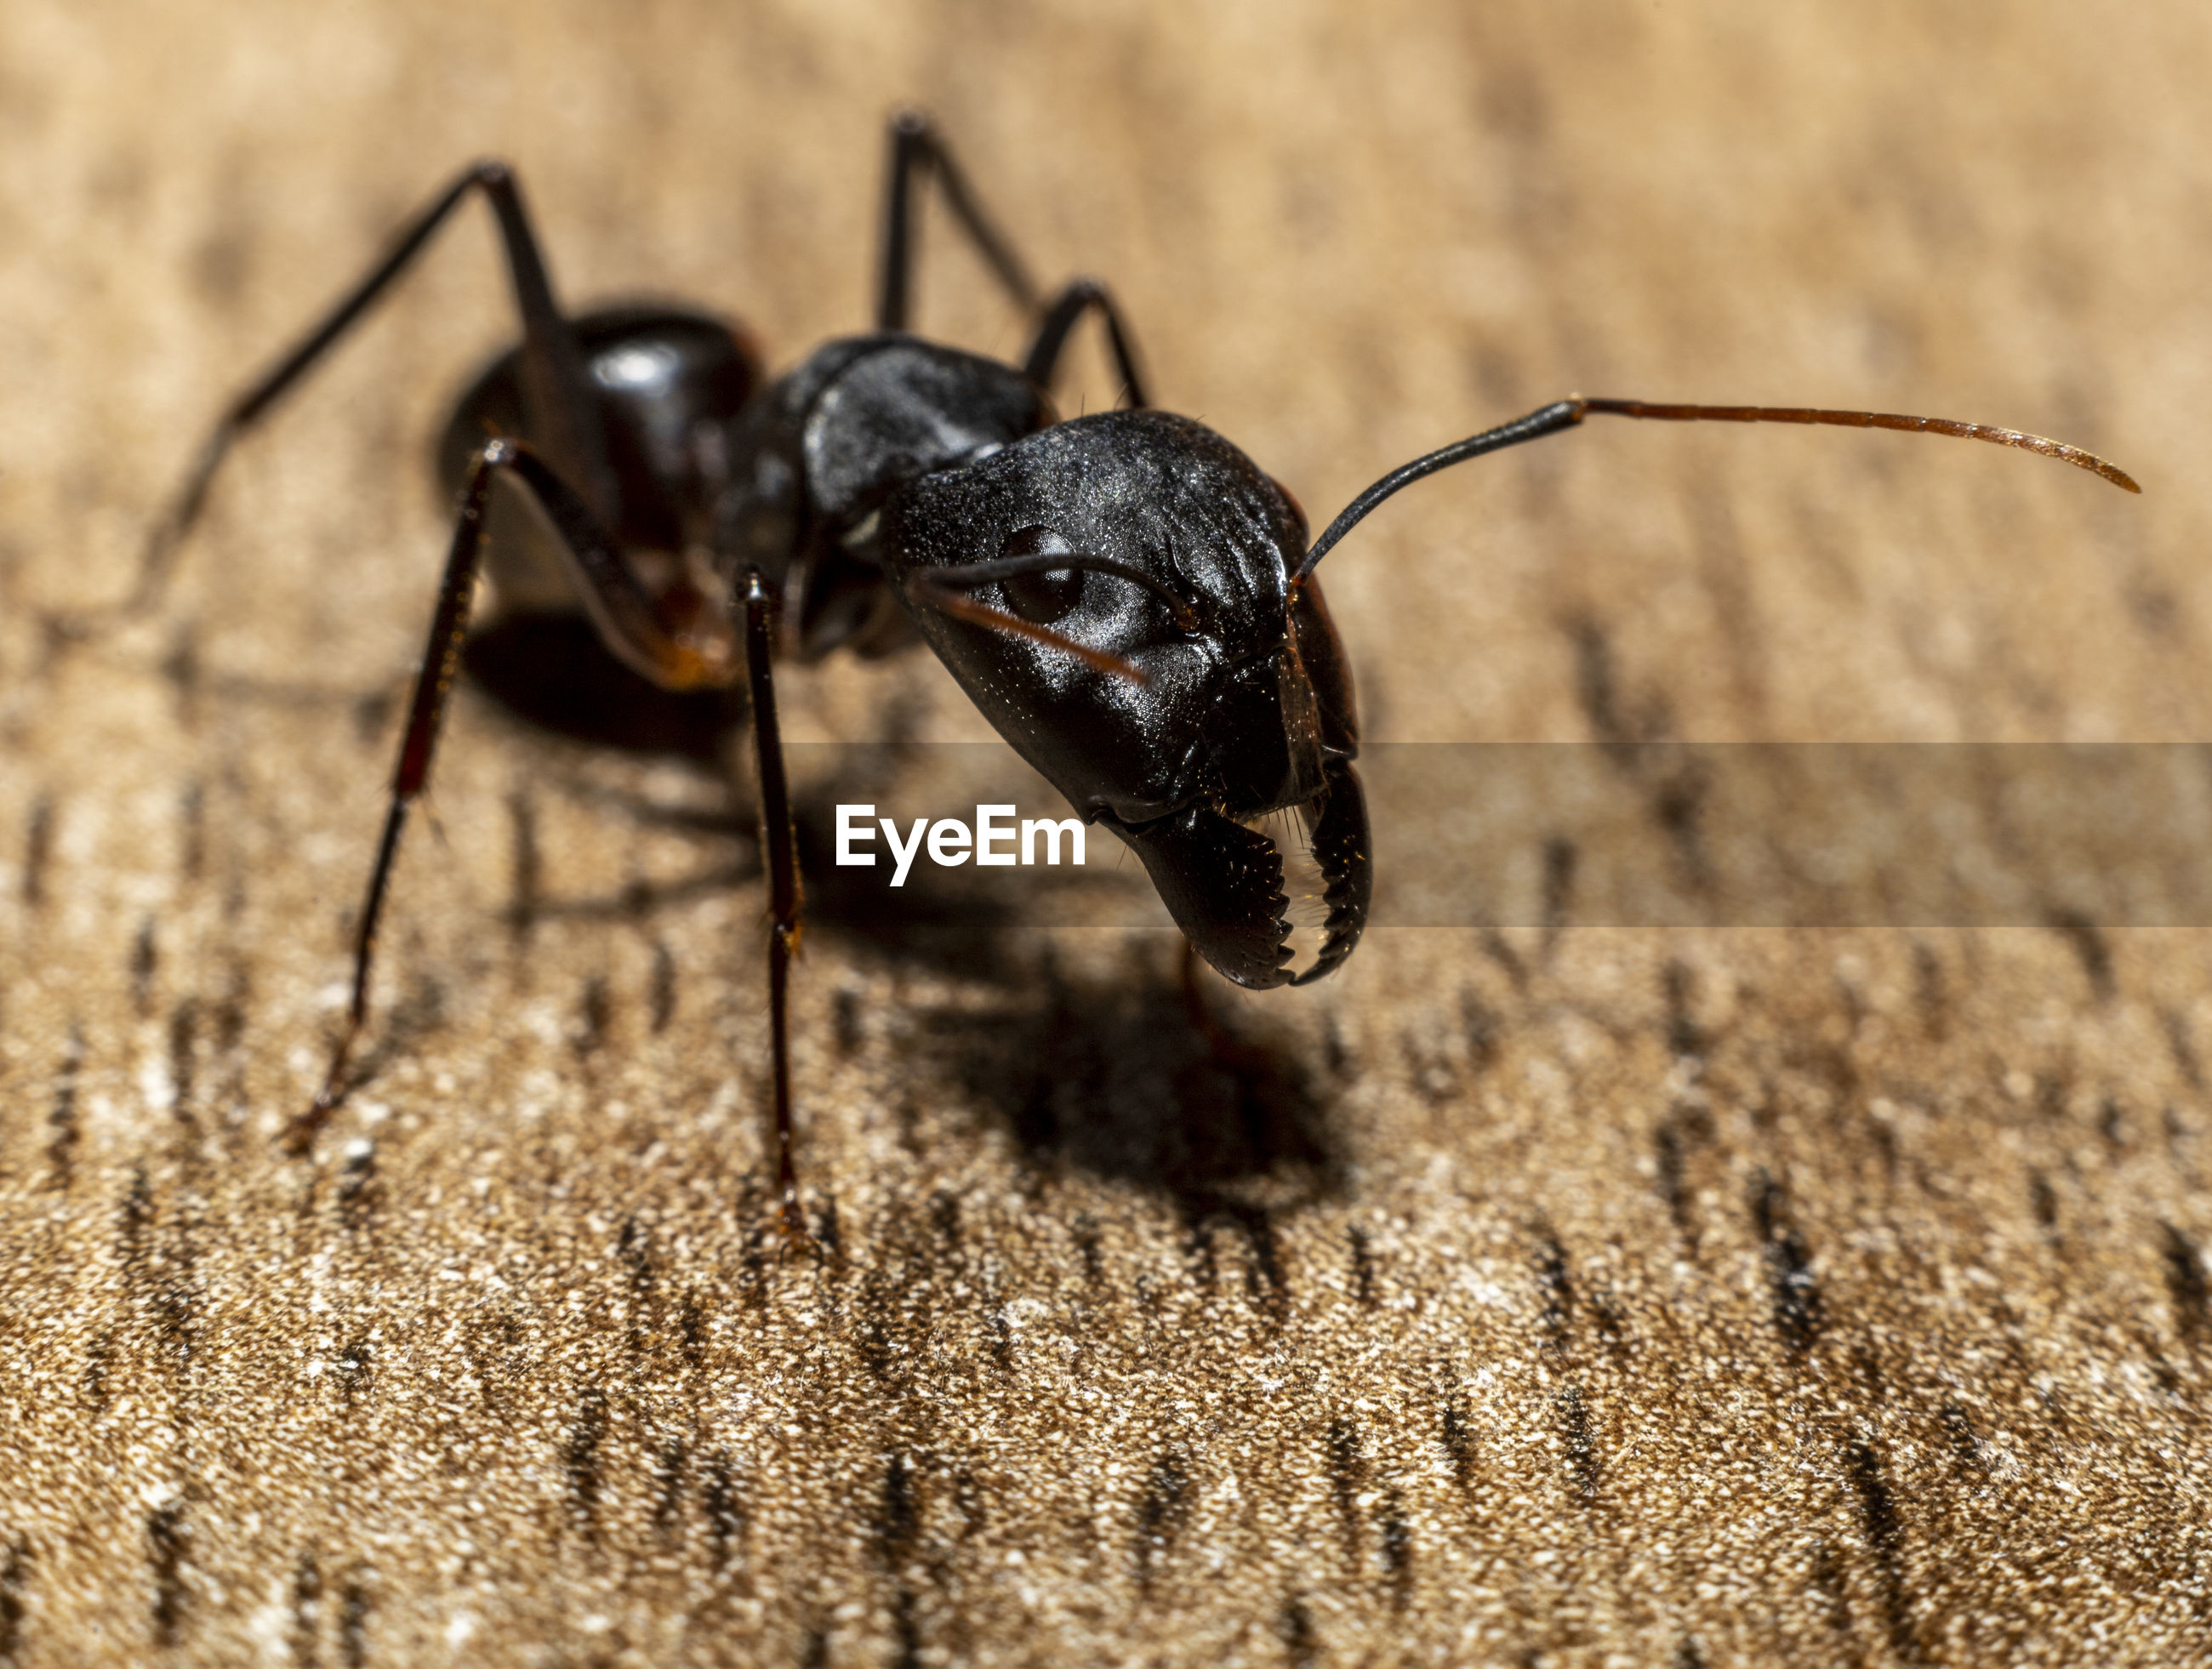 CLOSE-UP OF ANT ON THE GROUND